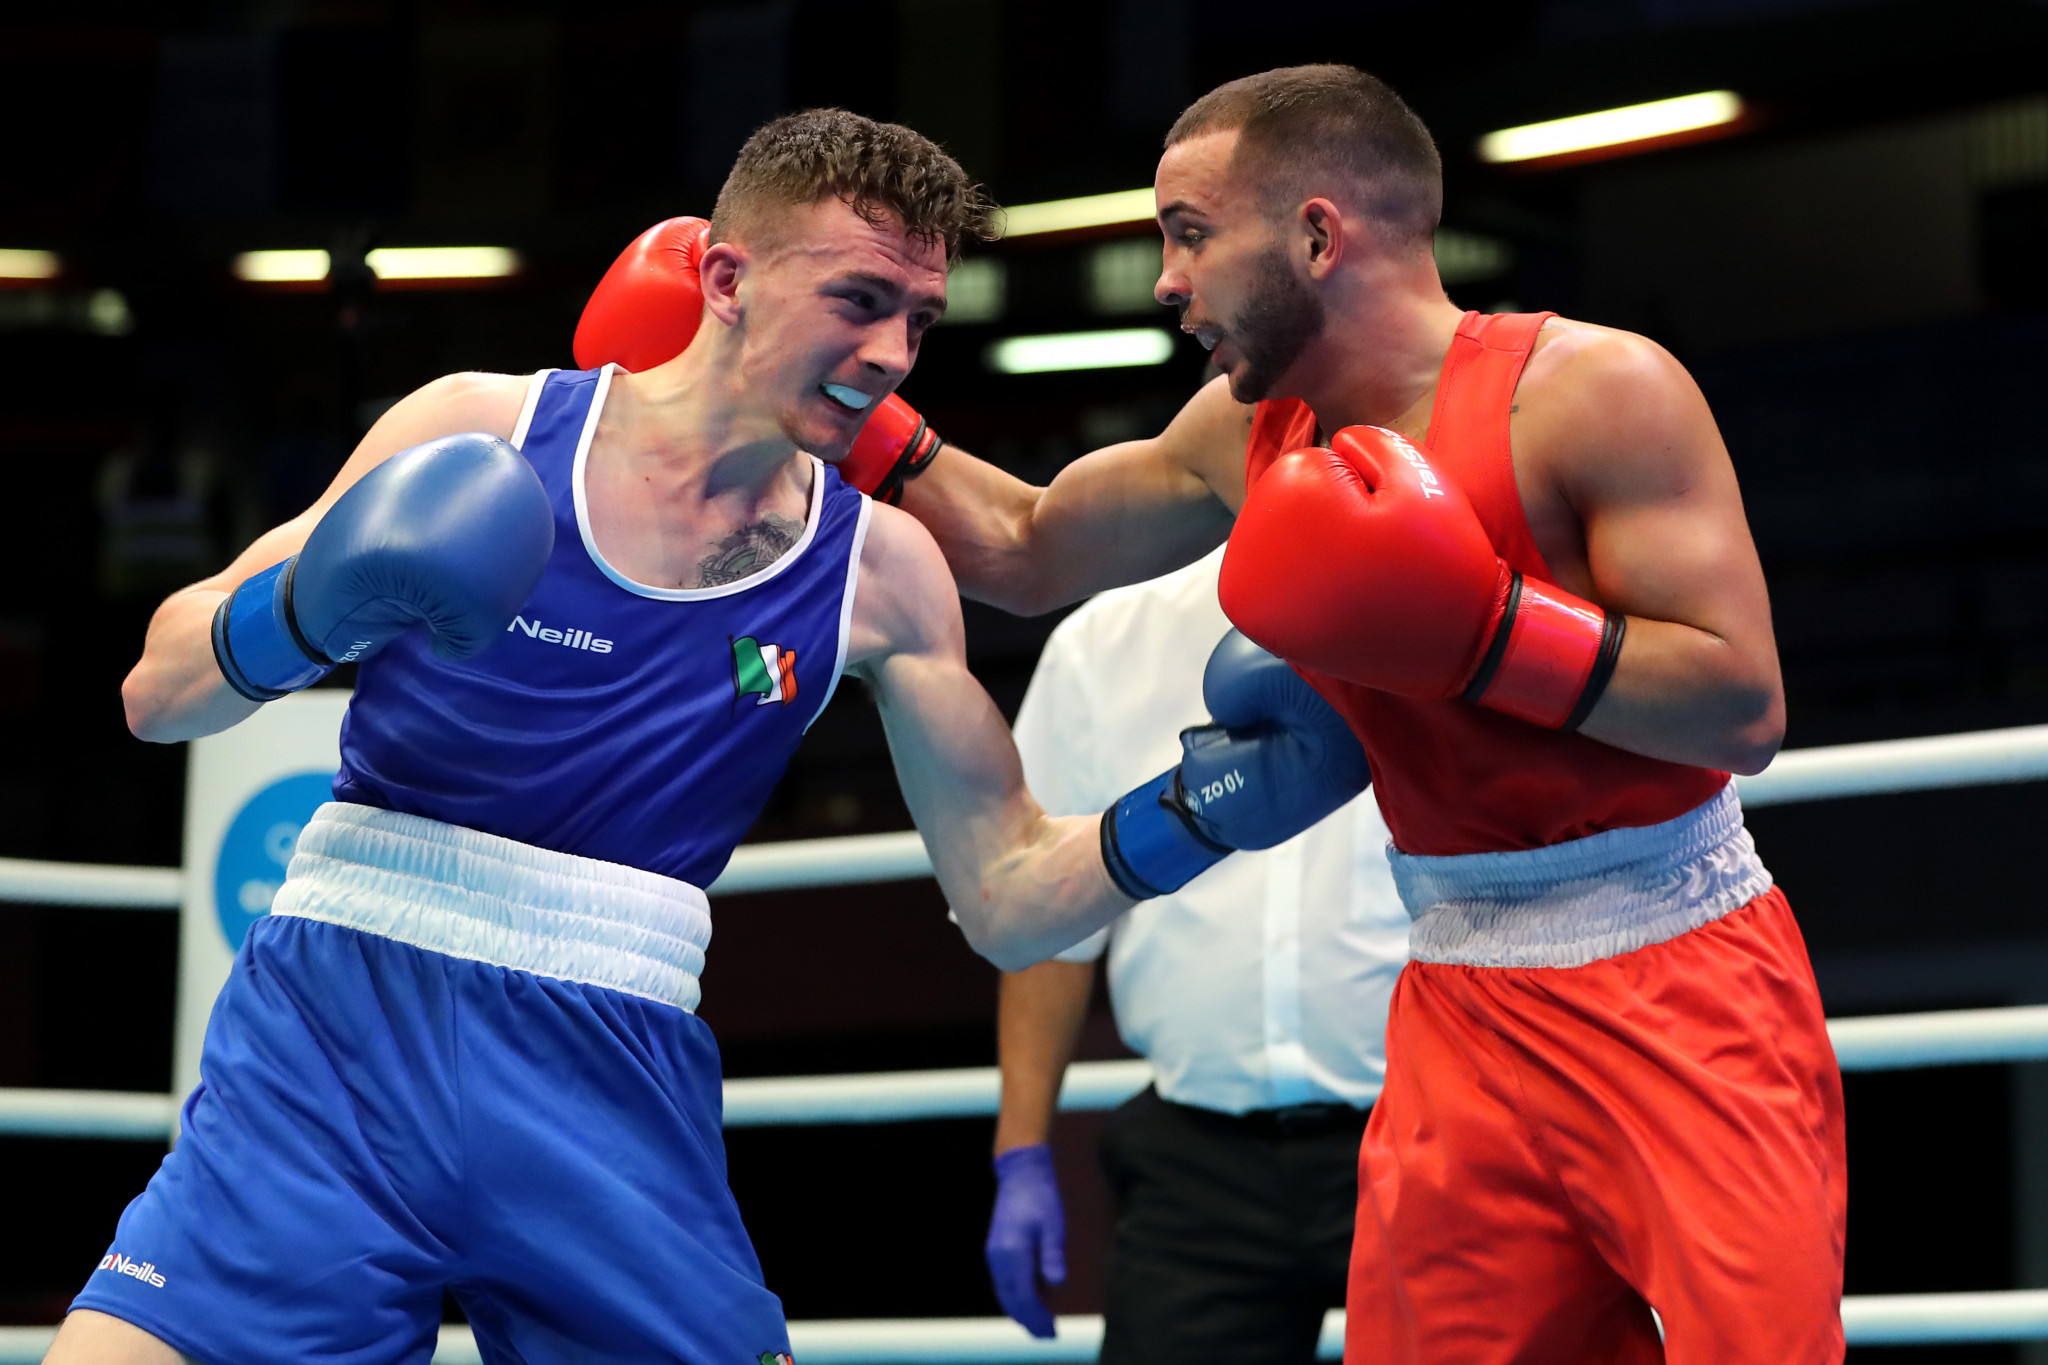 Ireland's high performance boxers have been granted special dispensation to return to training on July 20 ©Getty Images